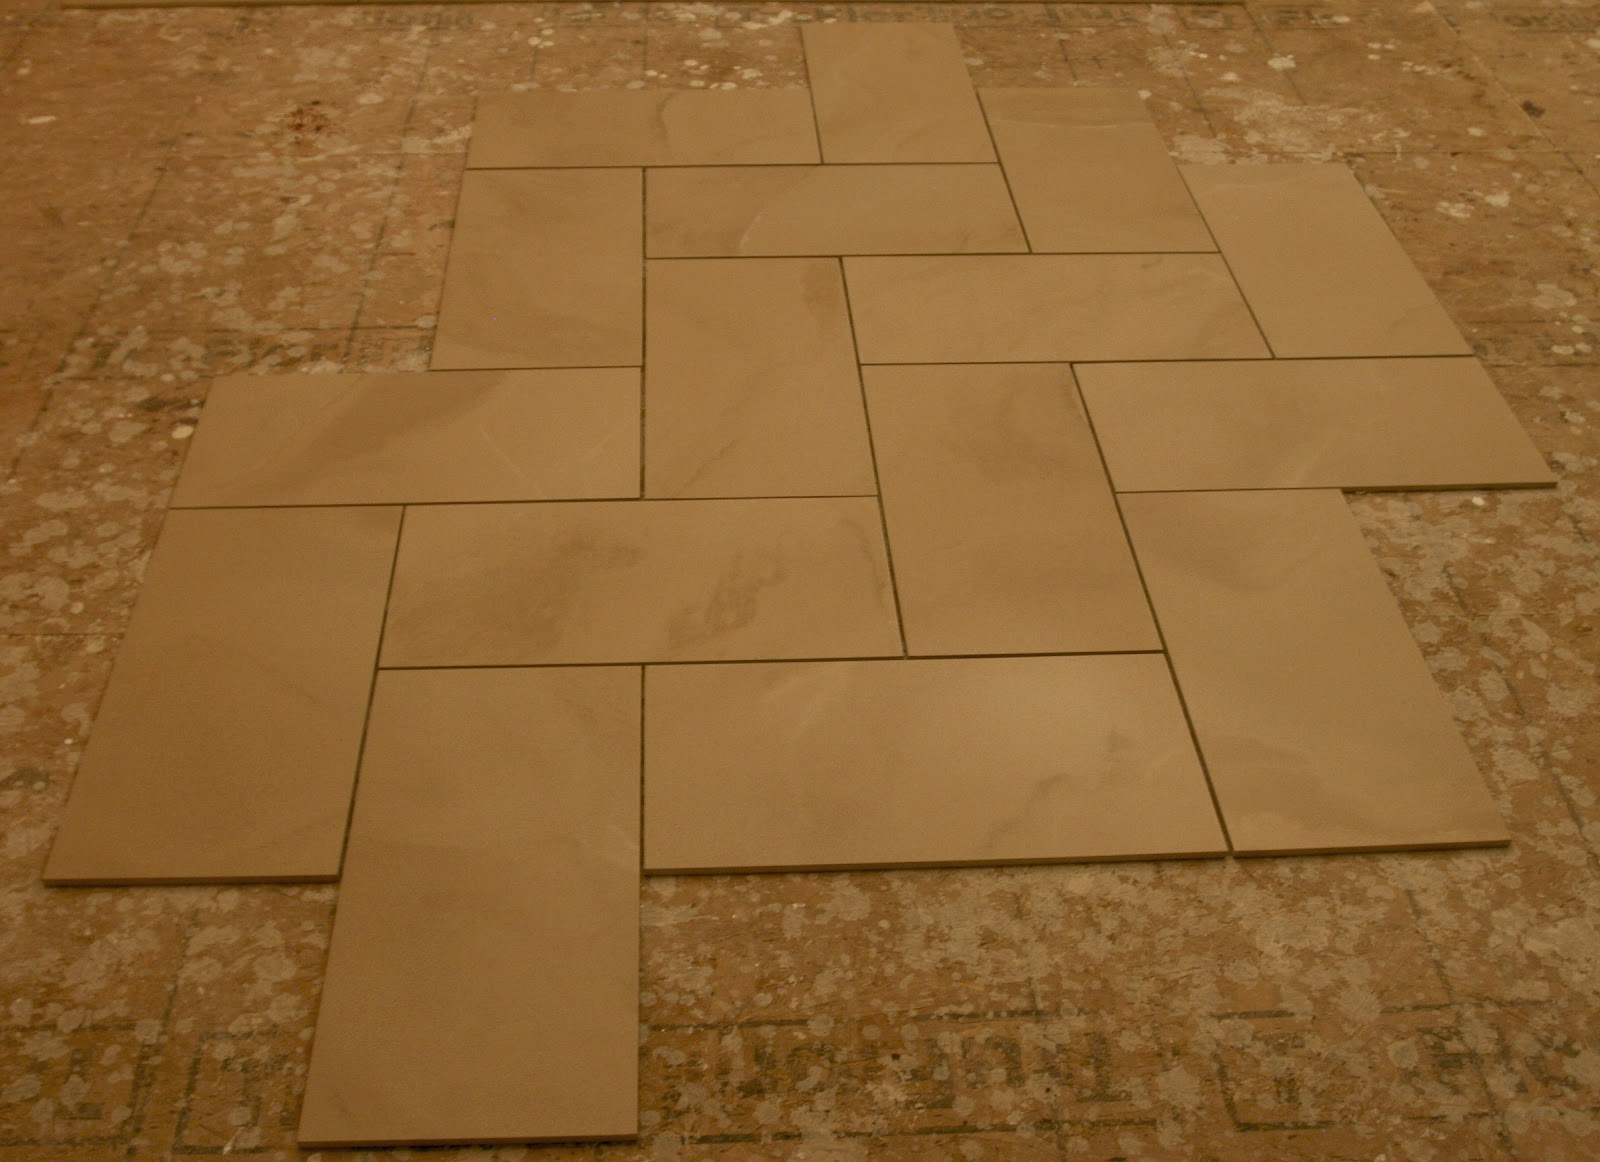 laying a tile floor in a bathroom wood floors